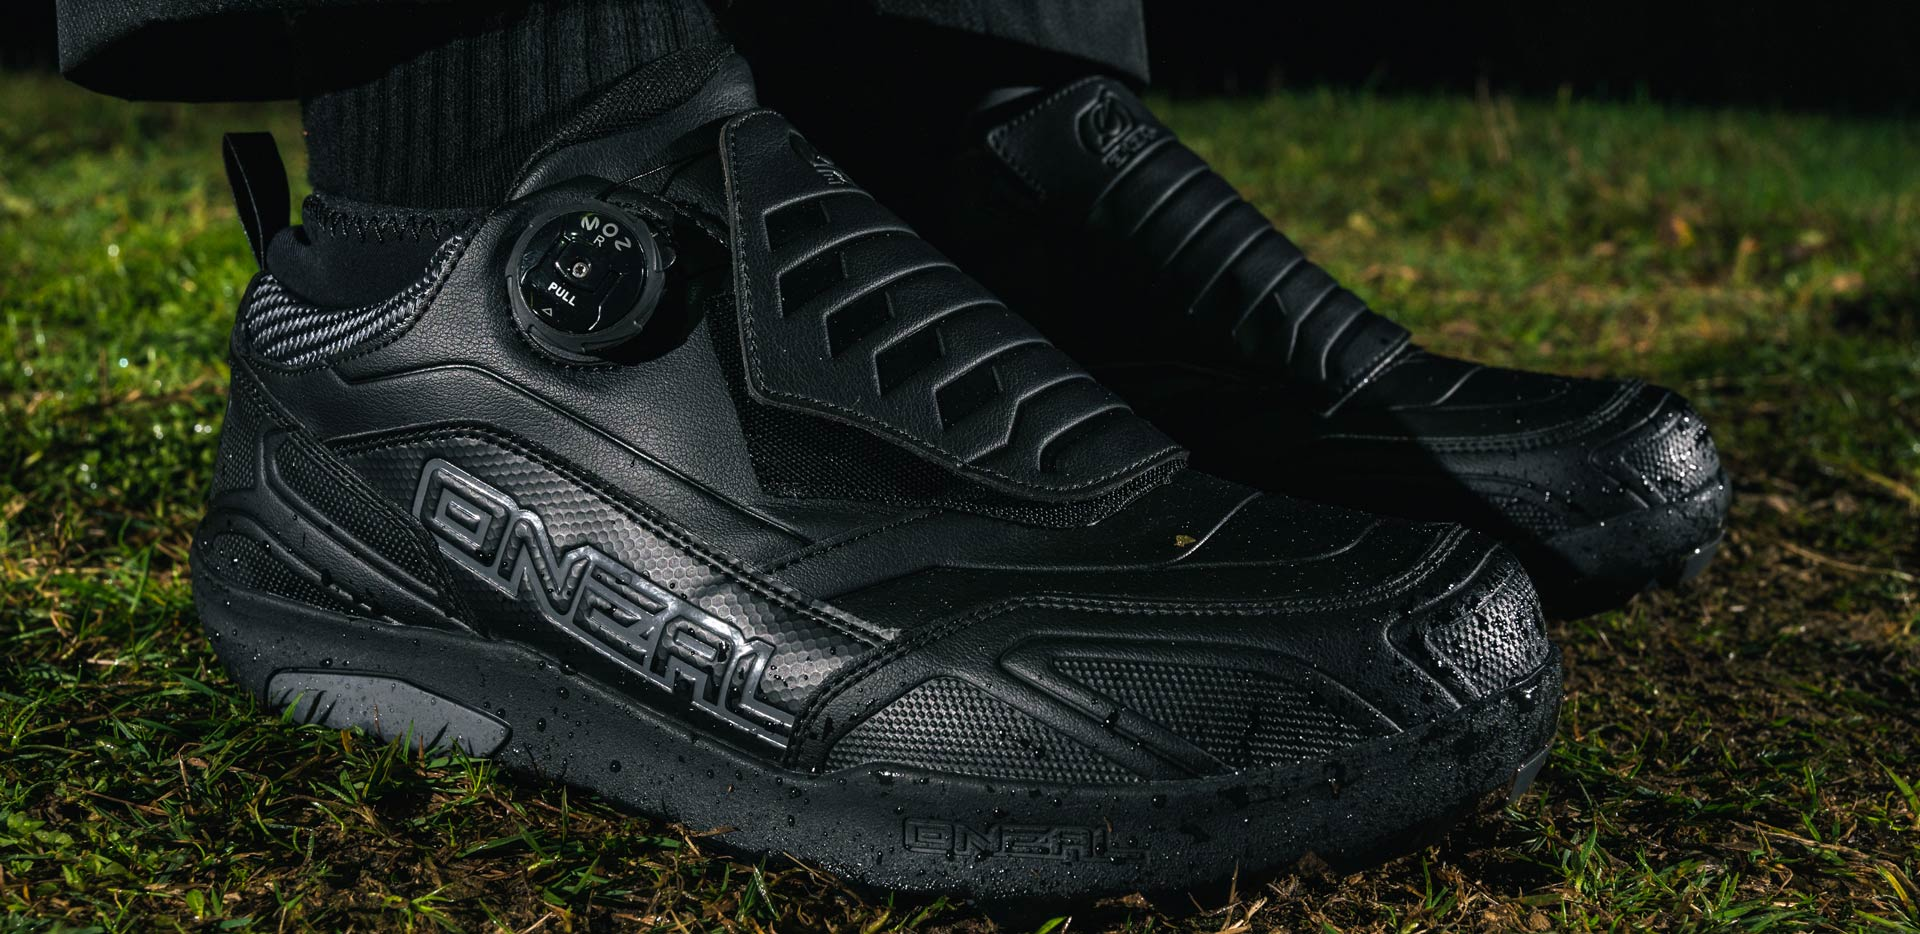 Oneal Loam WP SPD Shoe Review